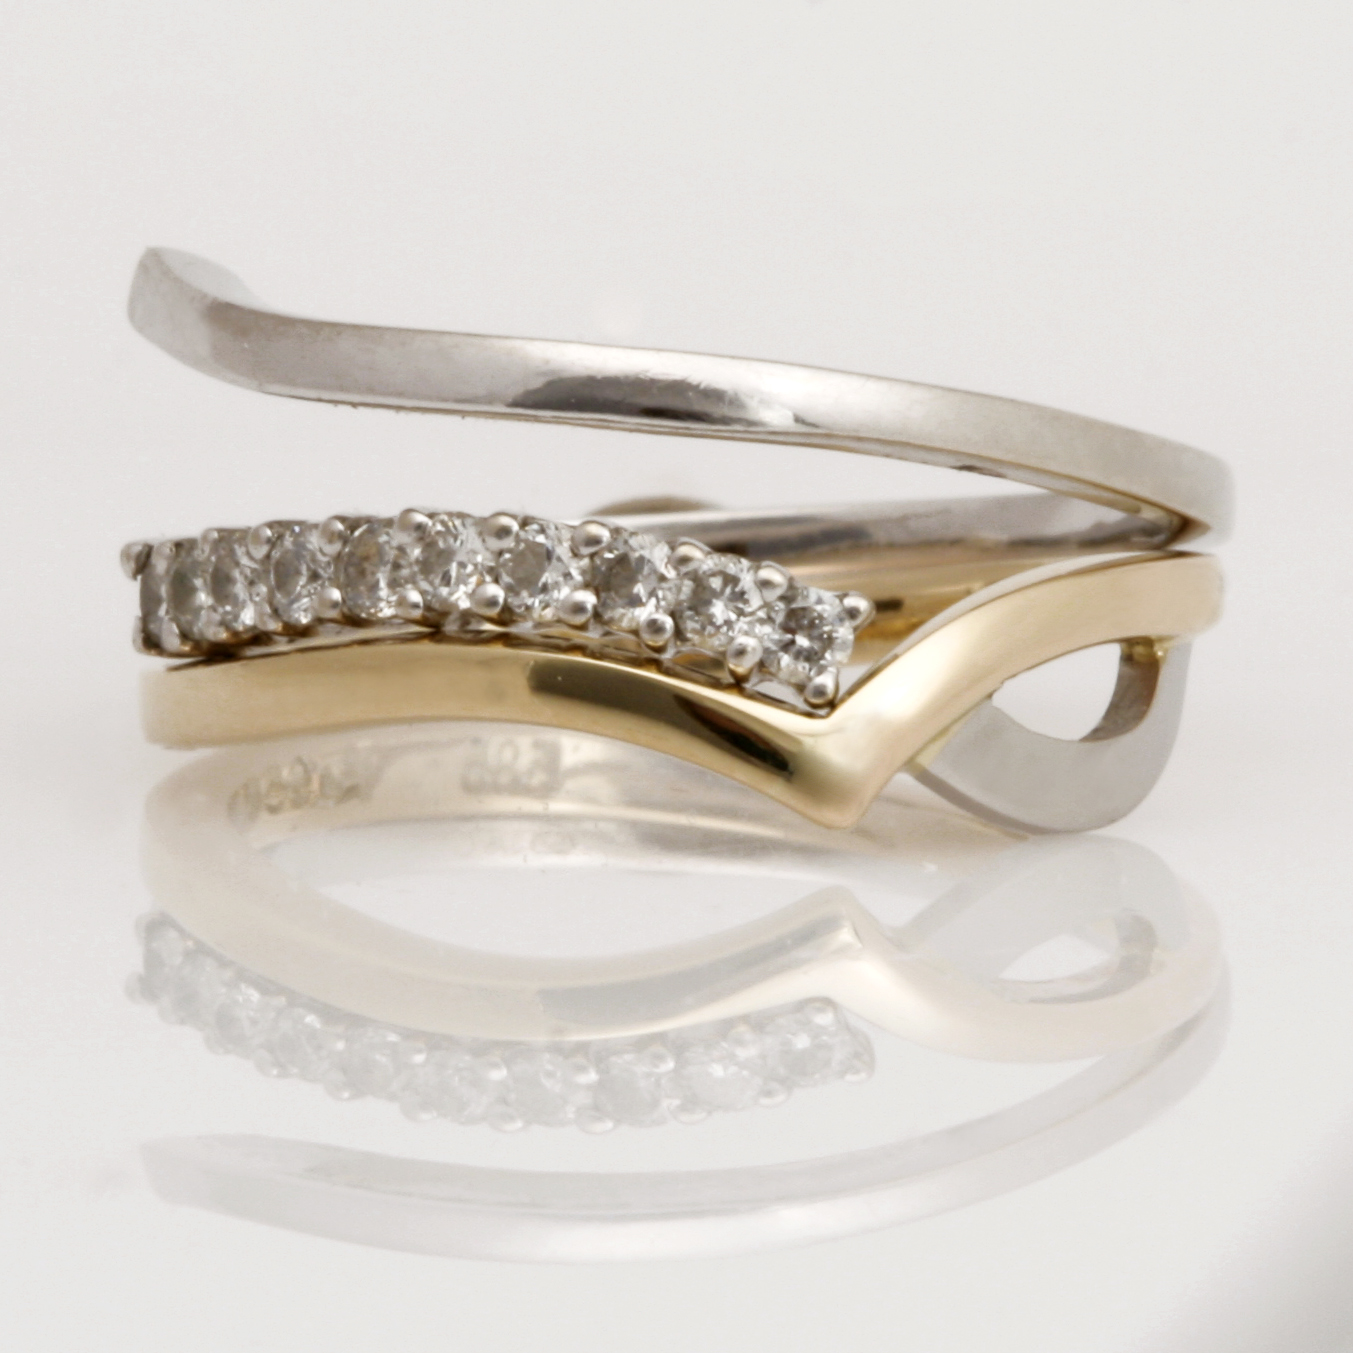 Handmade ladies 18ct yellow gold and palladium wedding ring